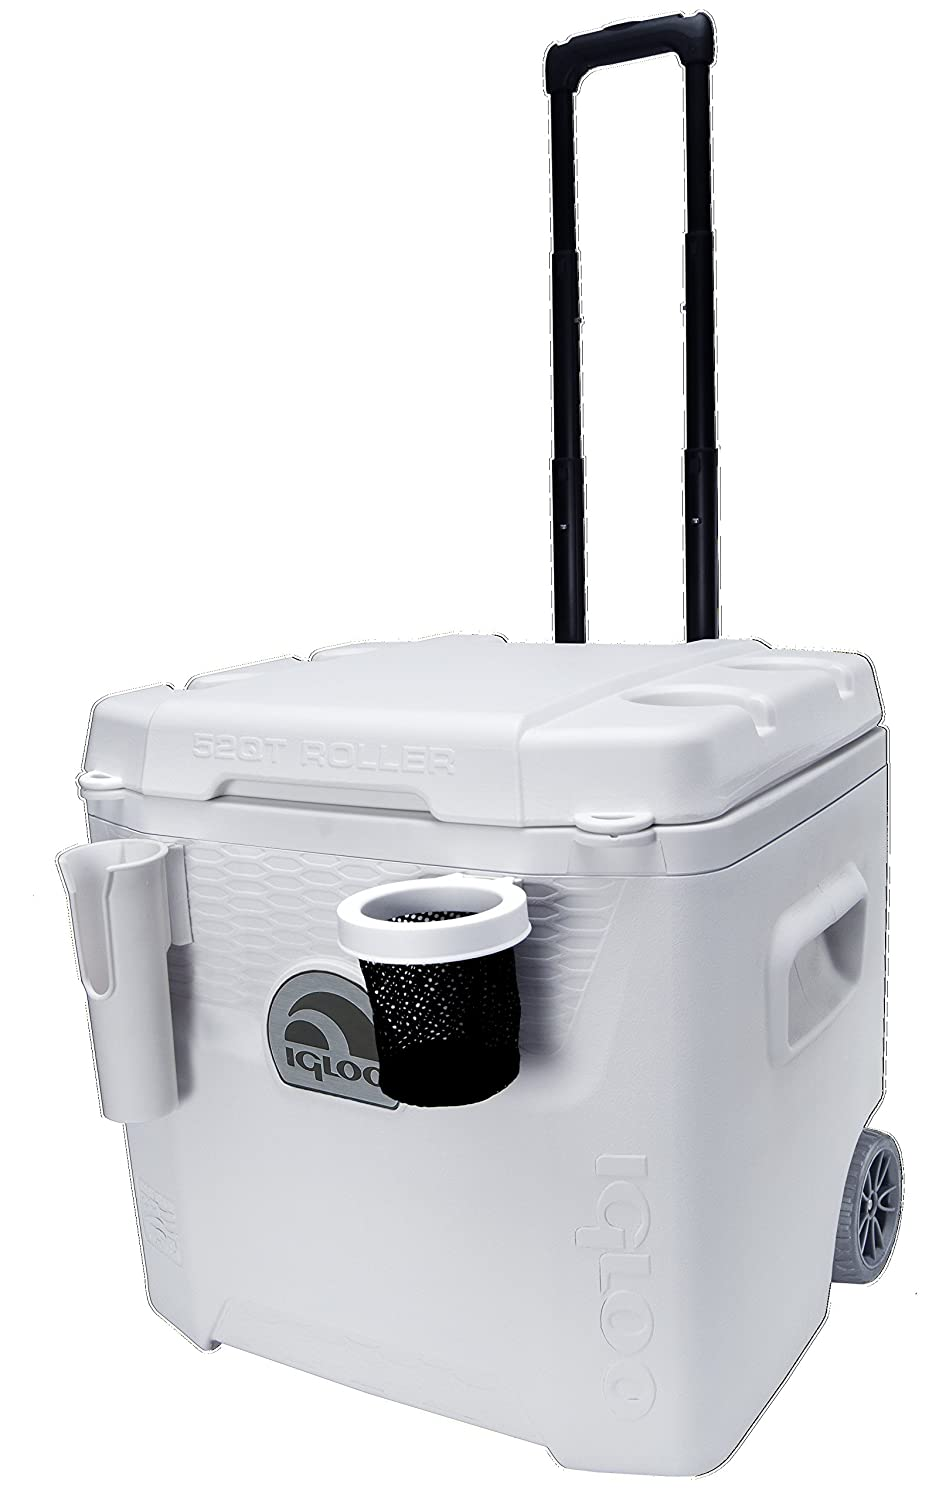 Igloo Products Corporation 00045931 Marine Ultra Quantum Roller Cooler, 52 quart by Igloo Products Corp.